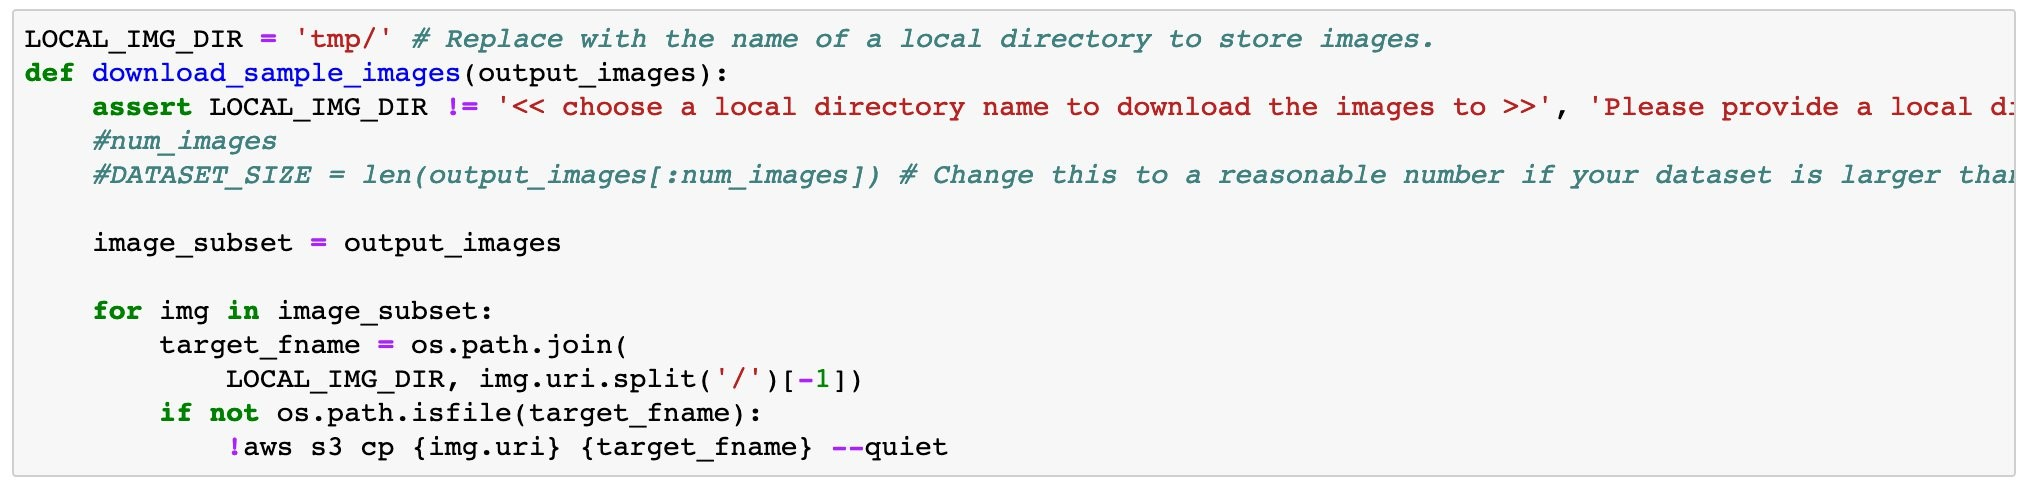 Code sample to show additional help functions